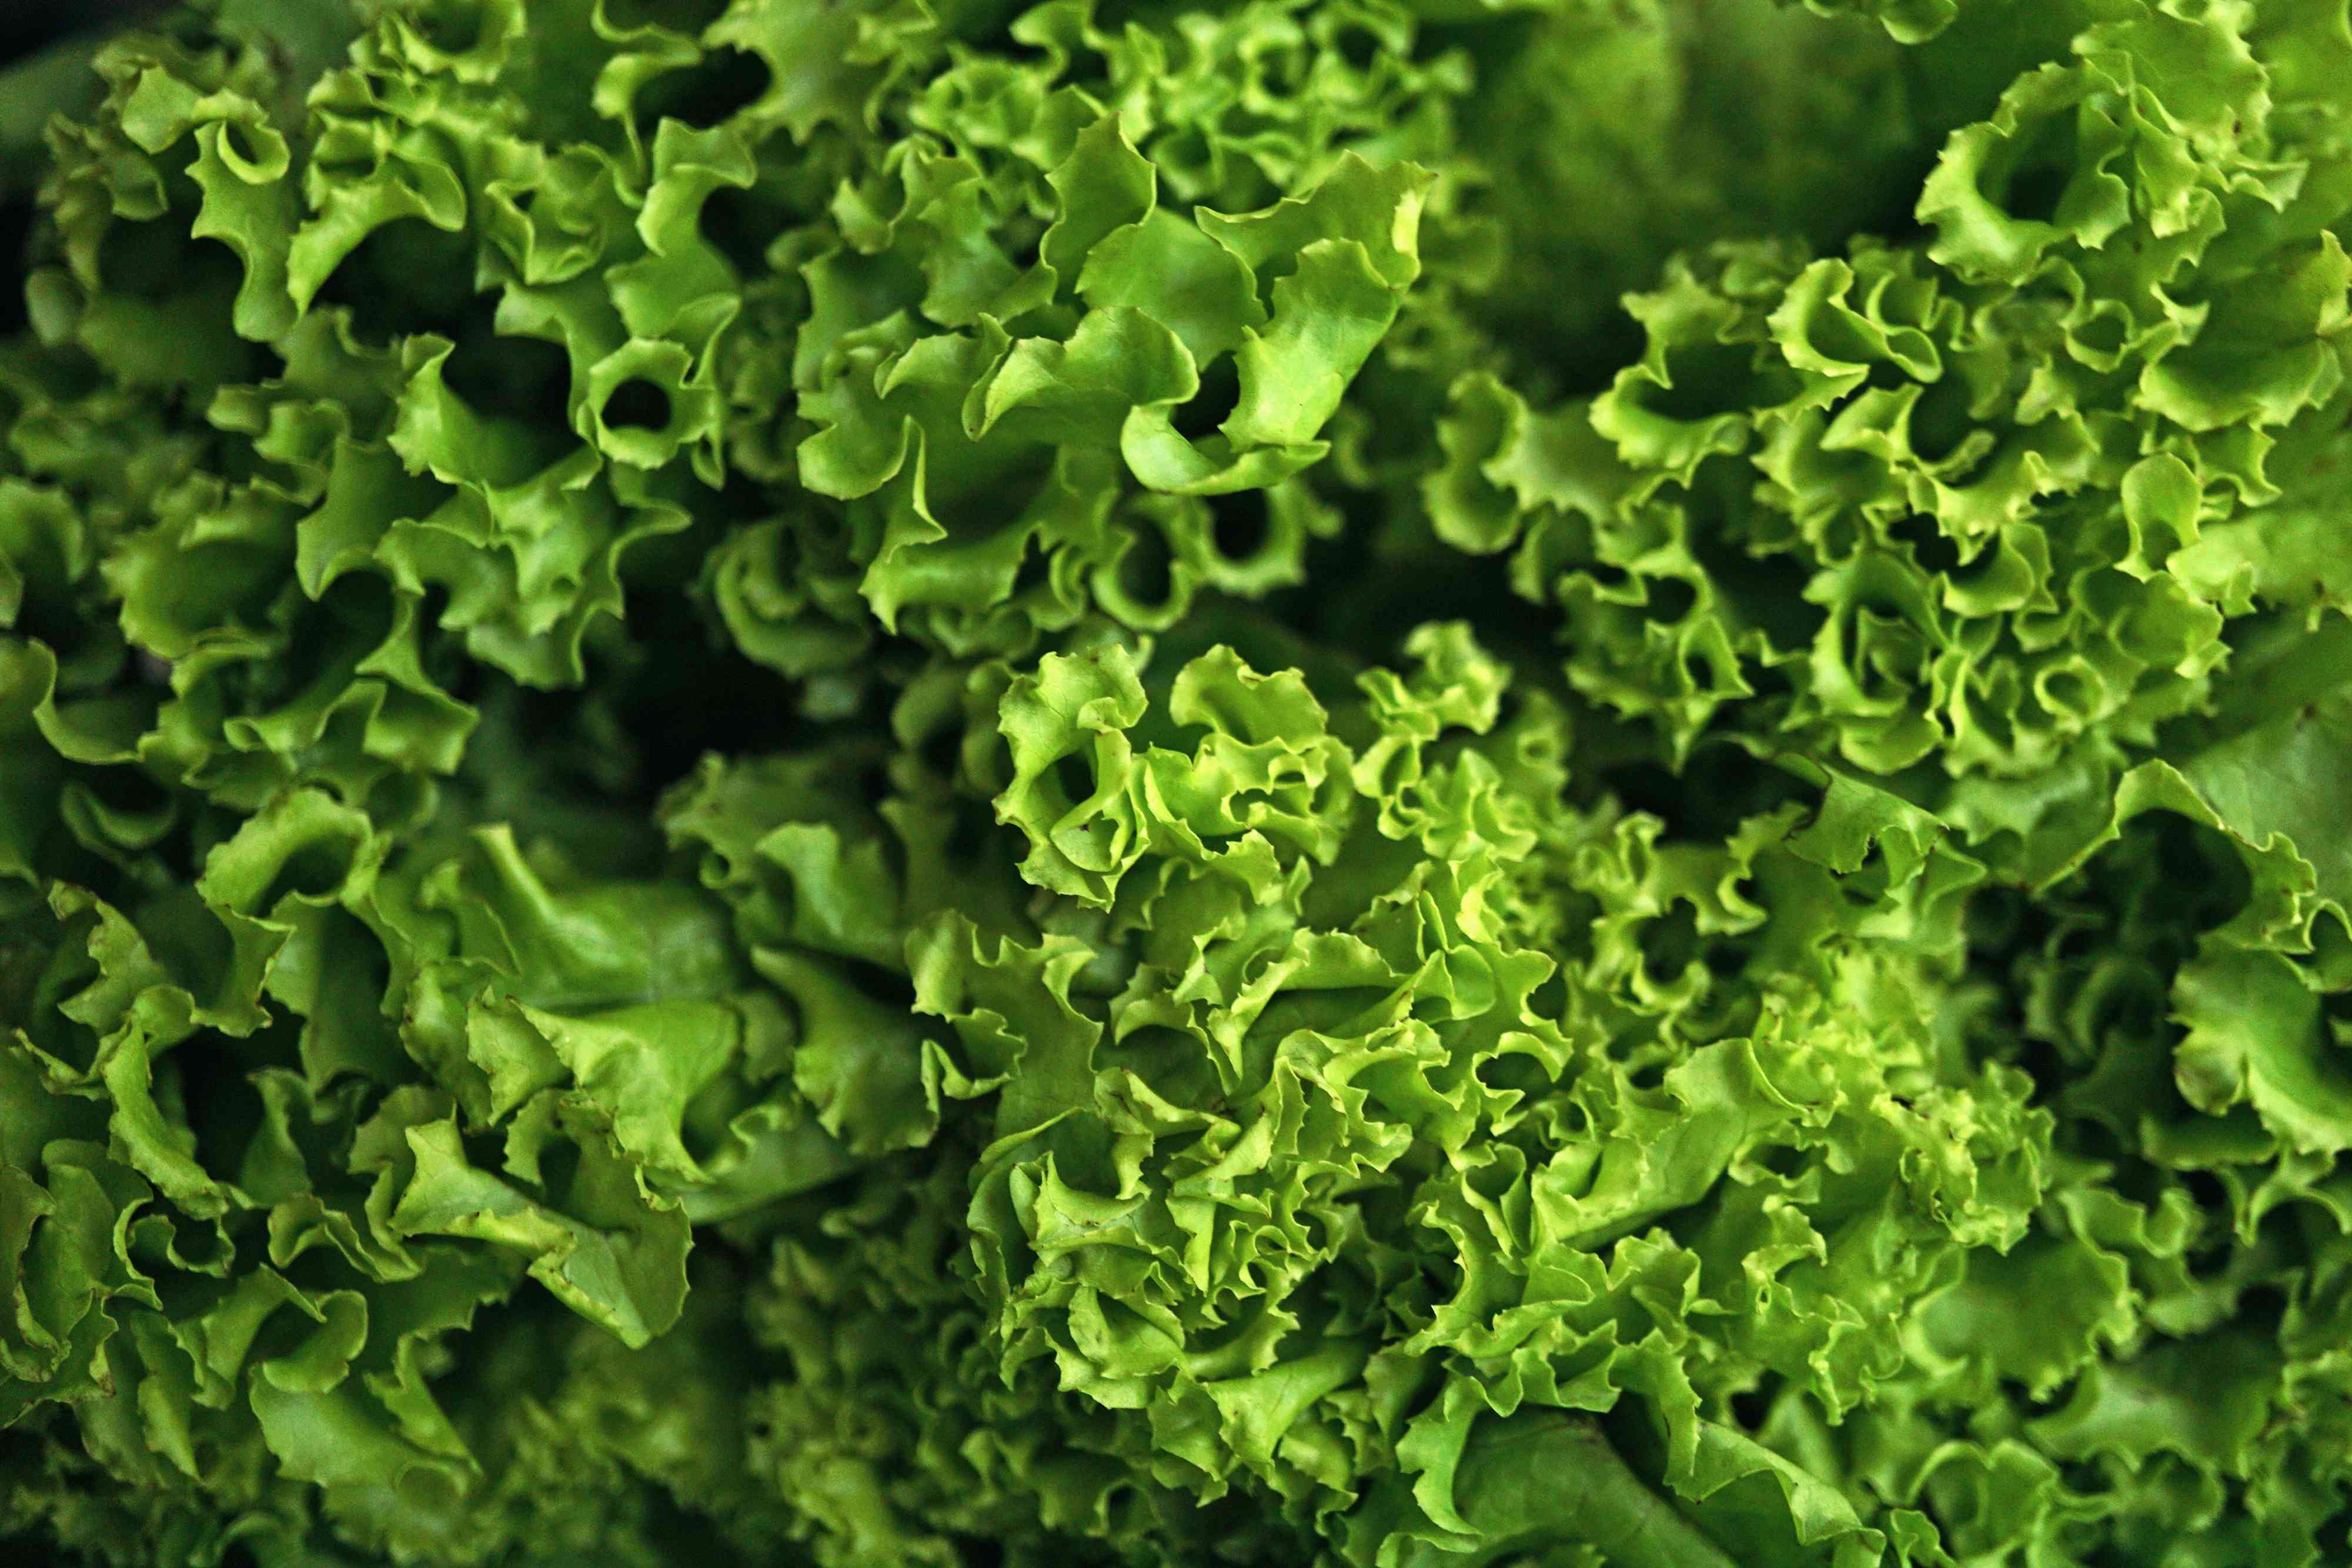 bright green lettuce leaves close up